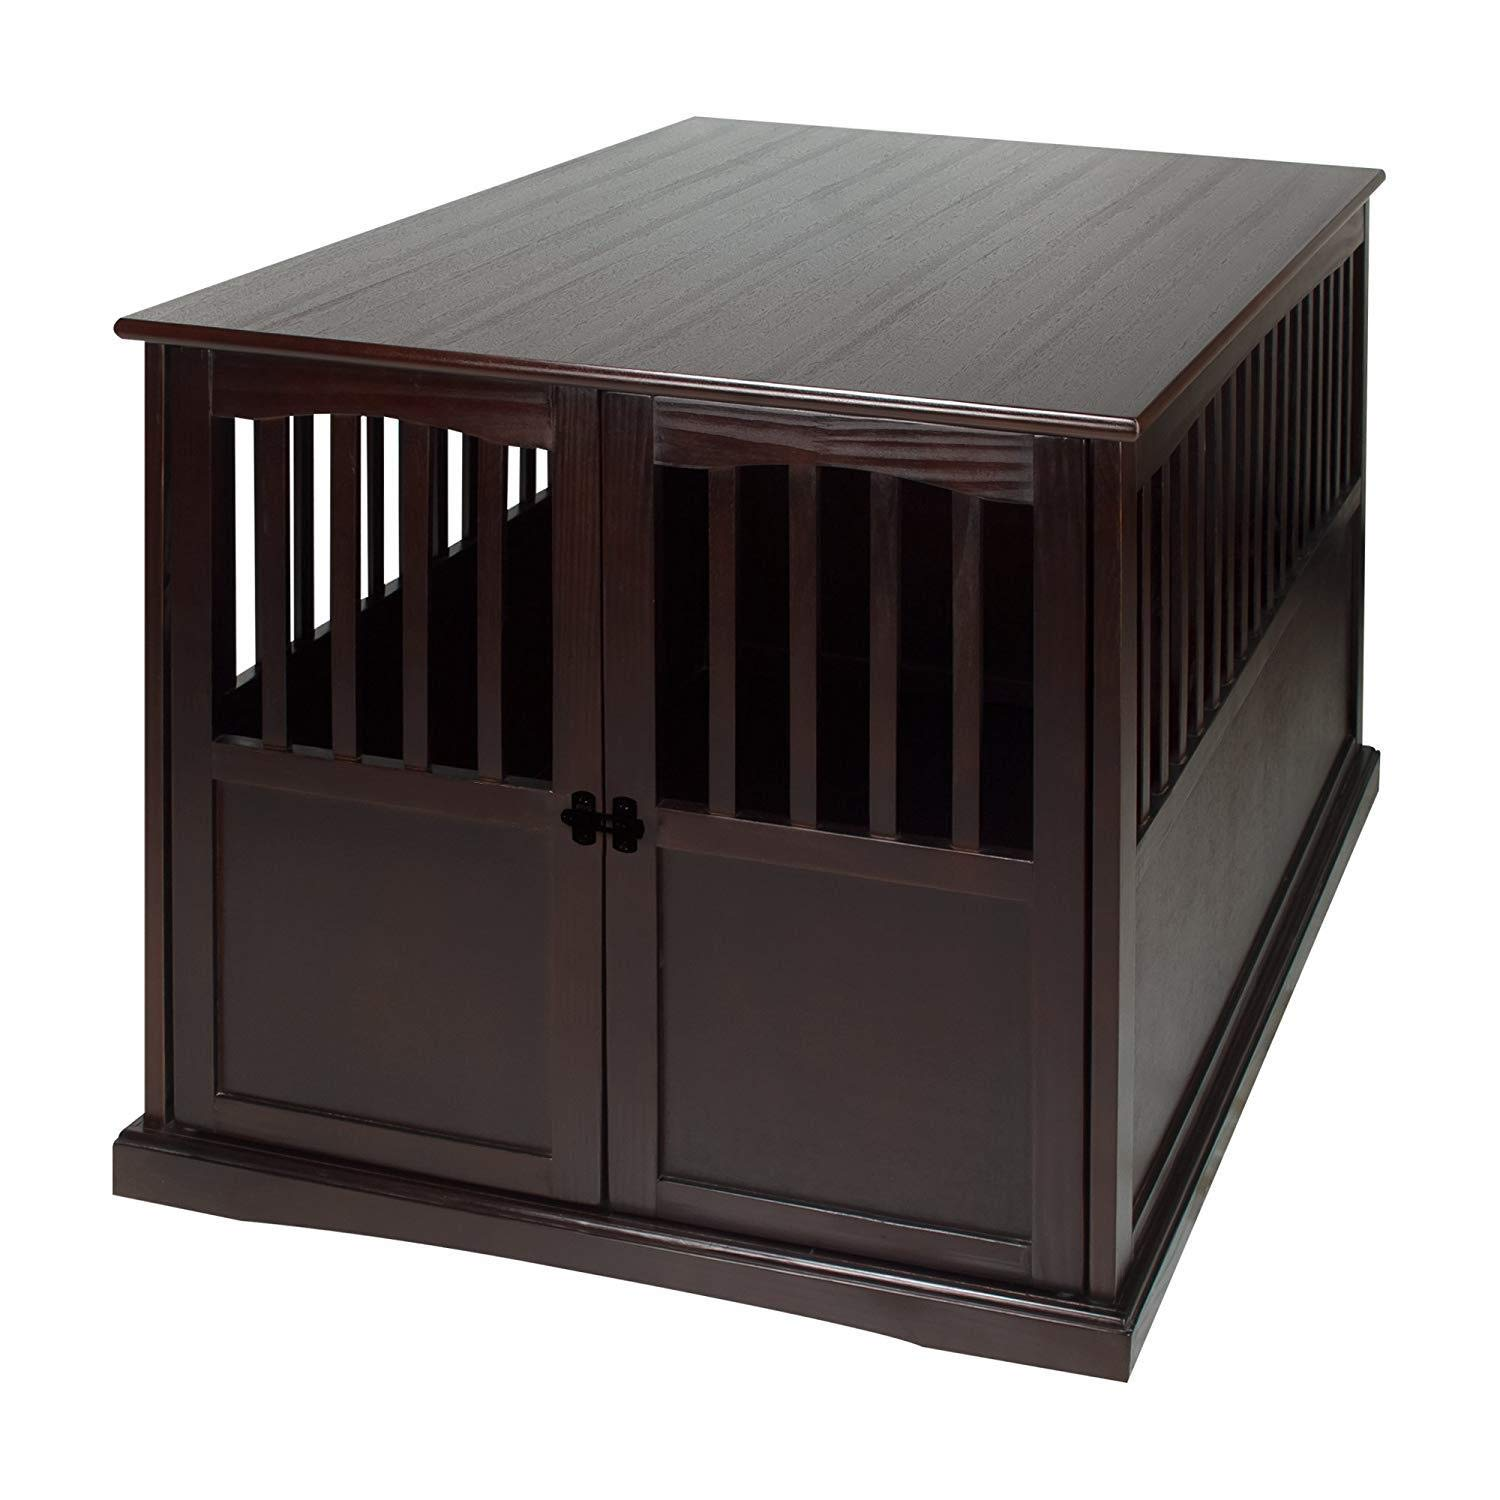 Casual Home 600-84 Wooden Extra Large Pet Crate, End Table, 31.5''W x 44.5''D x 30''H, Espresso